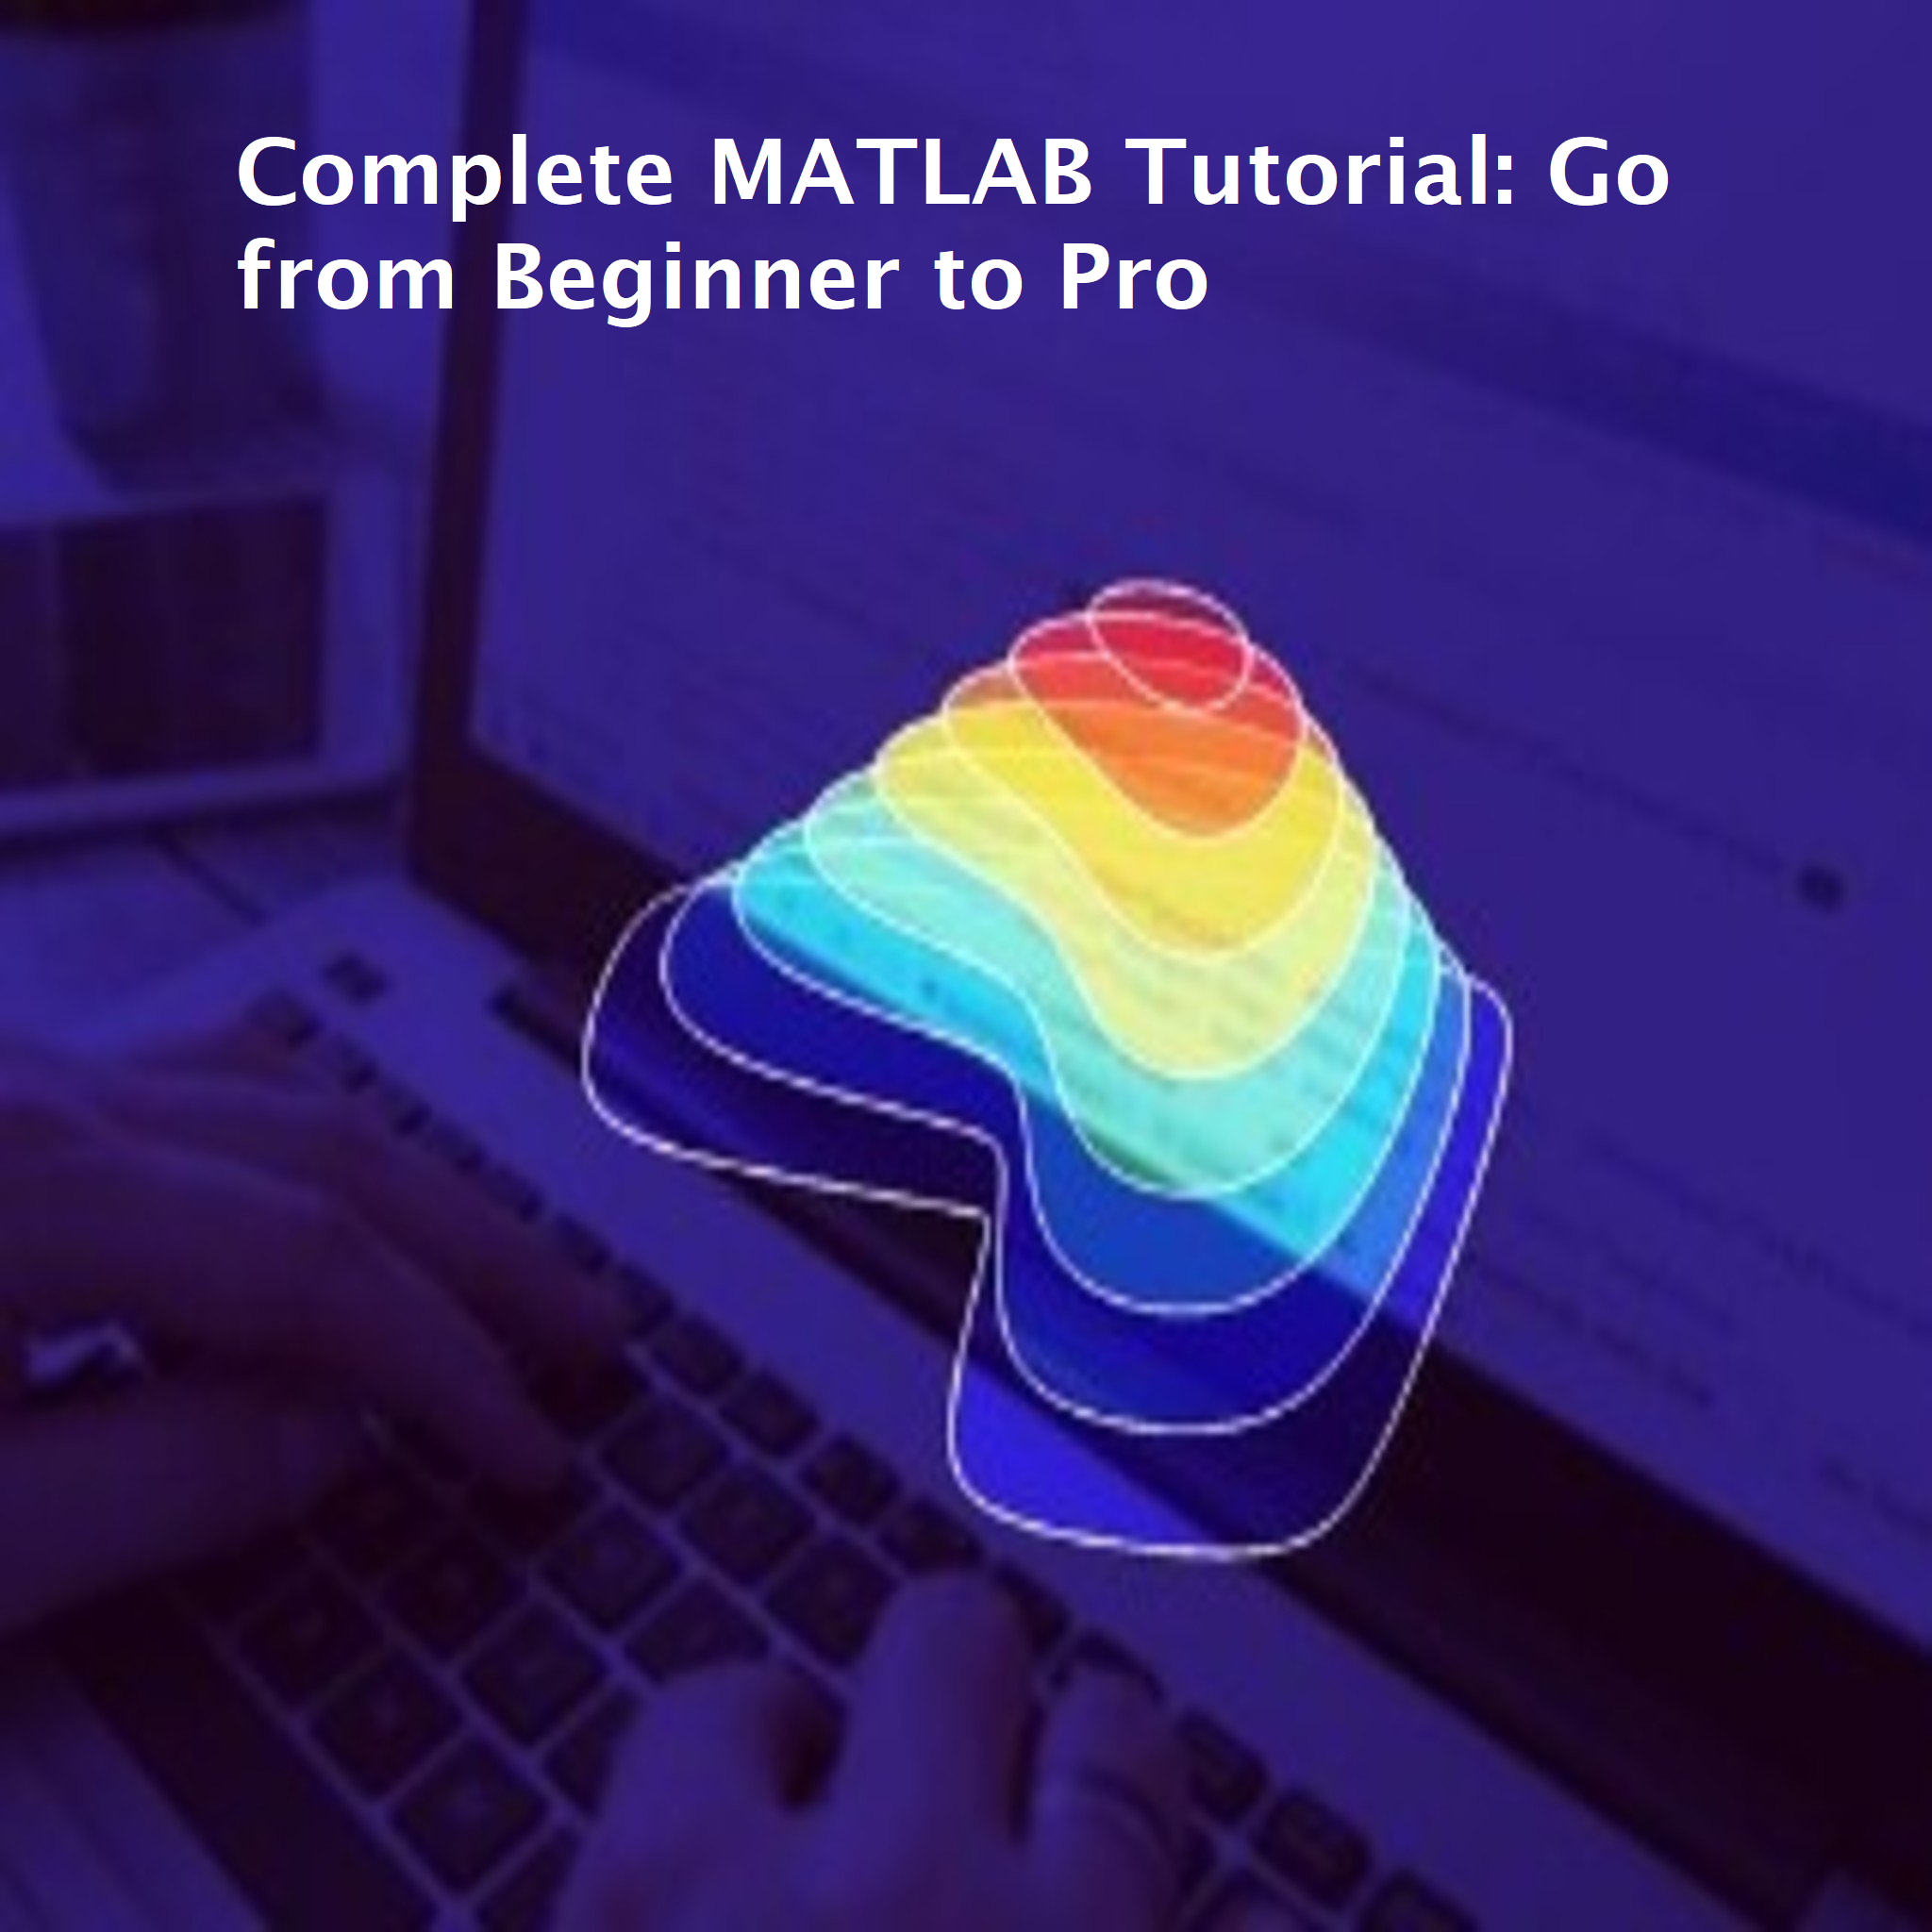 Complete MATLAB Tutorial: Go from Beginner to Pro